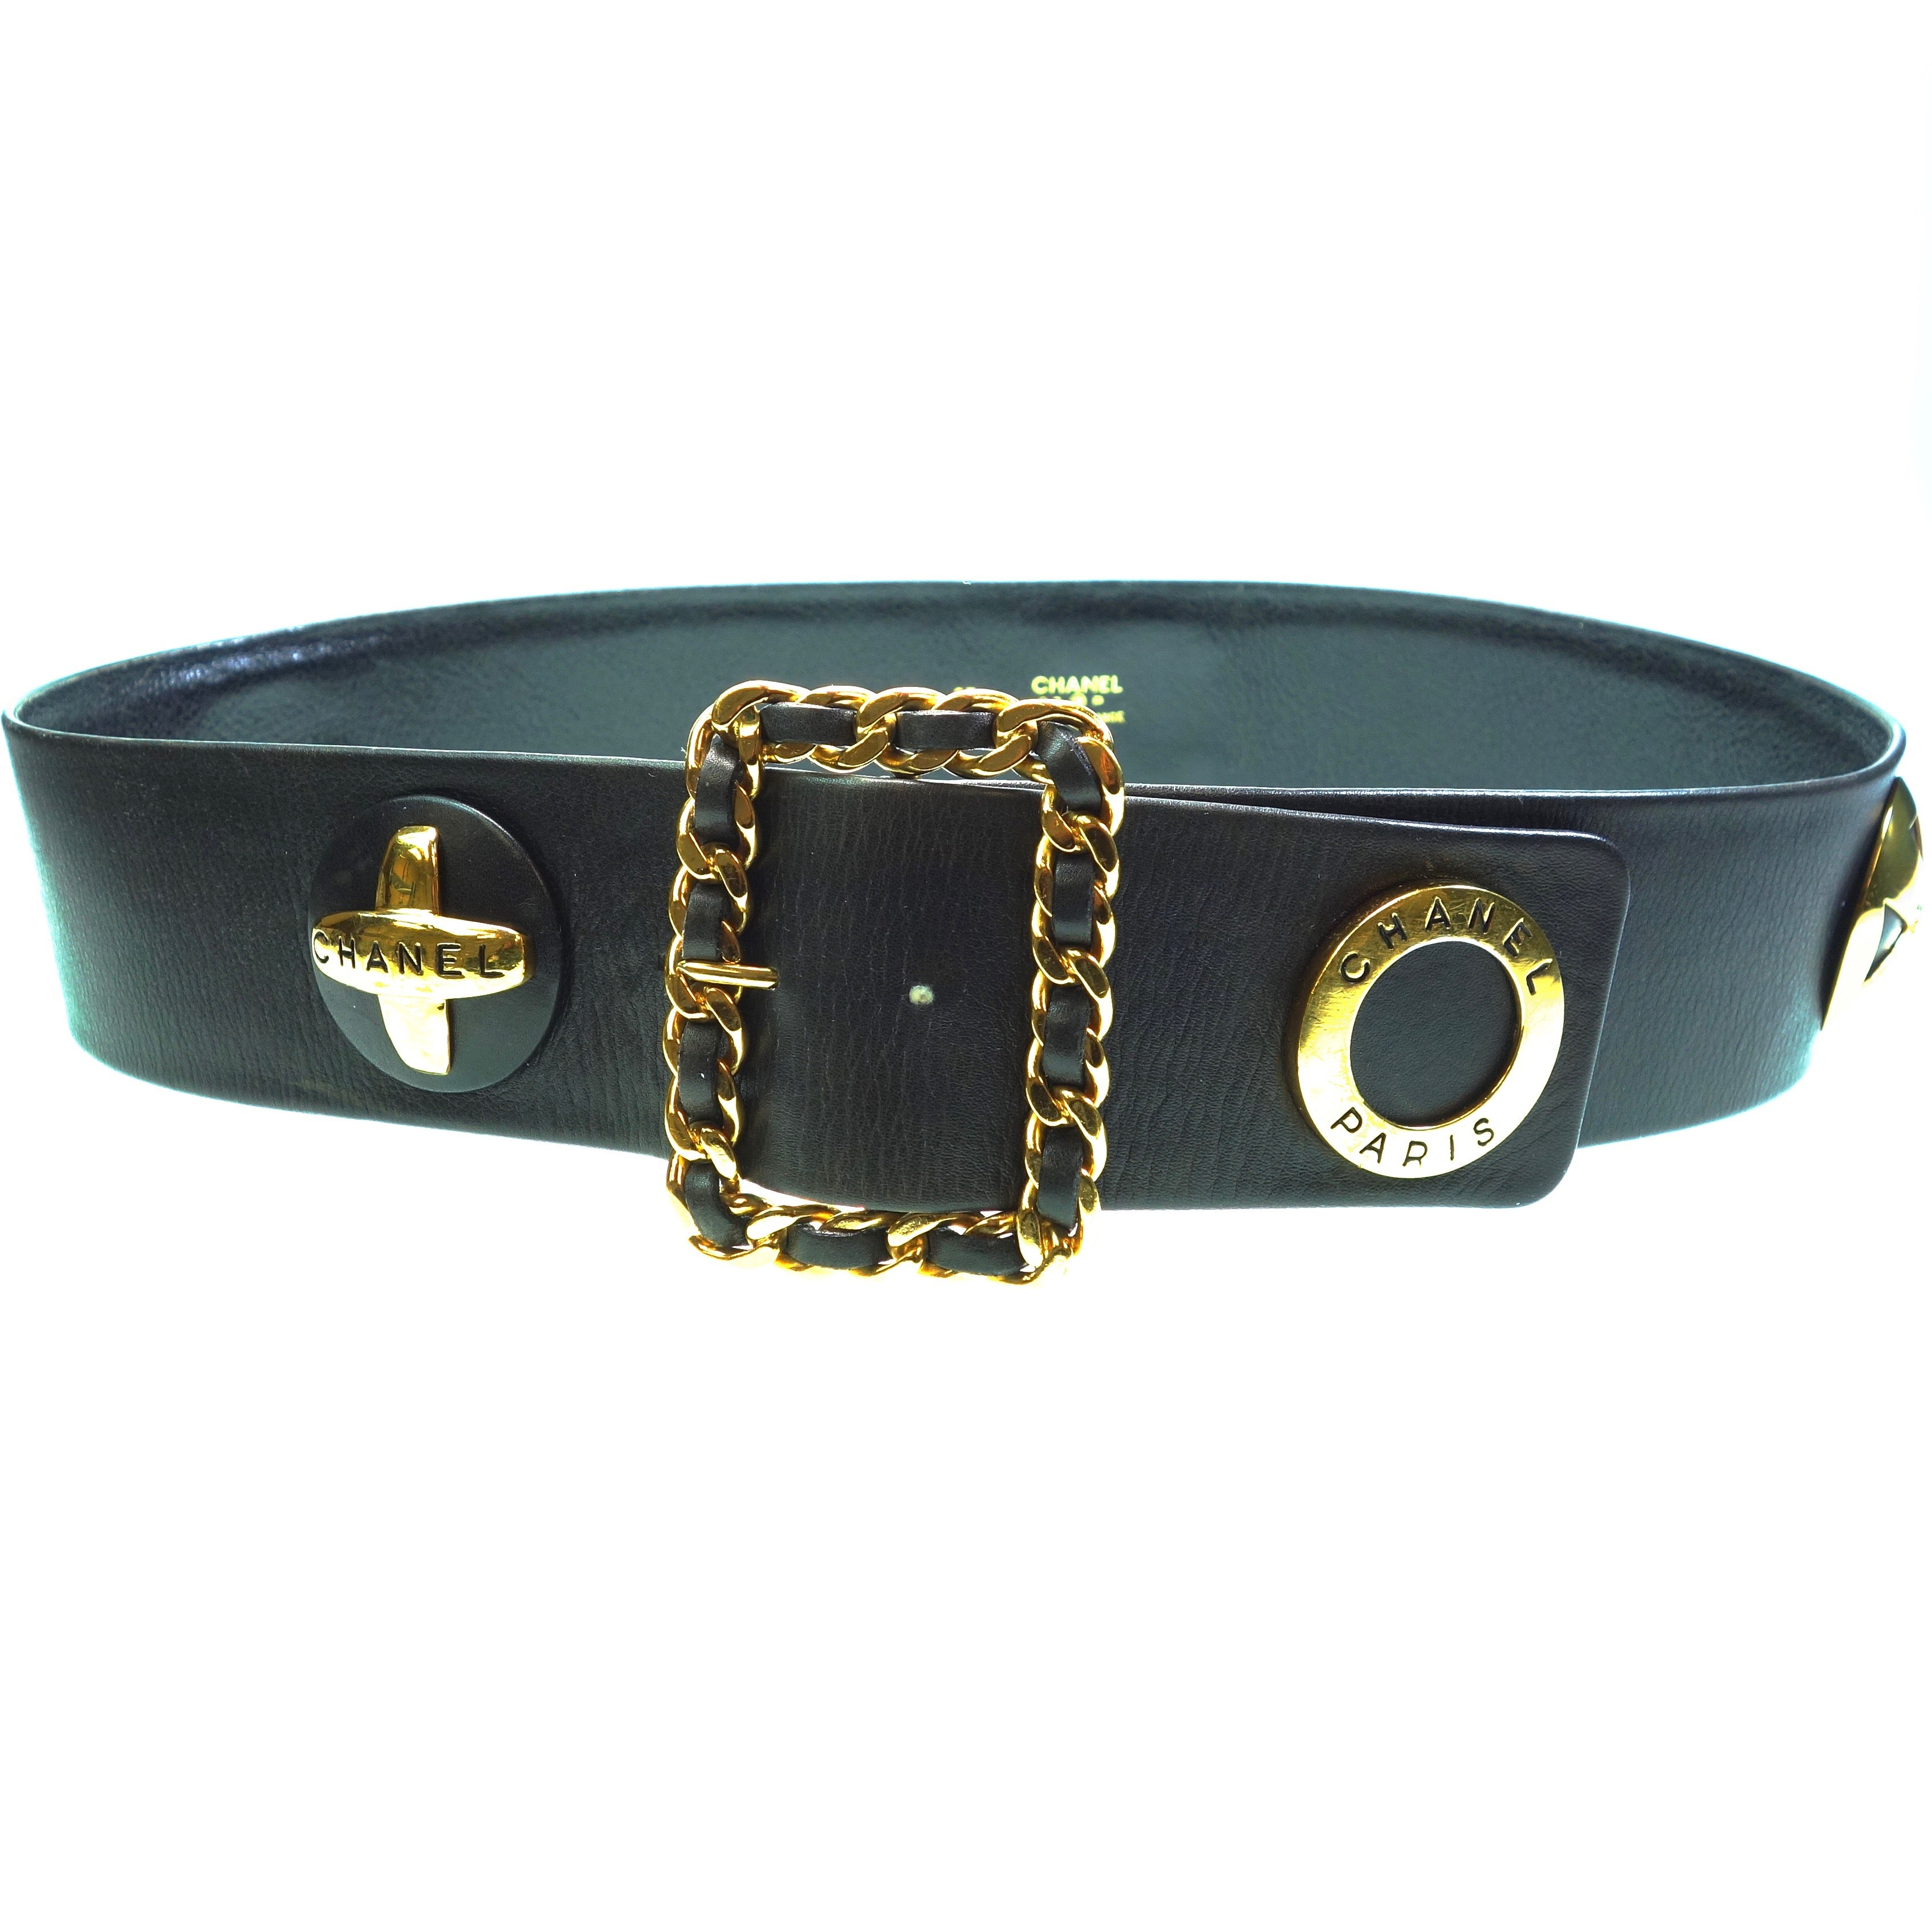 0a3a91bf5 CHANEL 93P Gold CC Logos and Chain Large Buckle Black Belt Vintage at  1stdibs